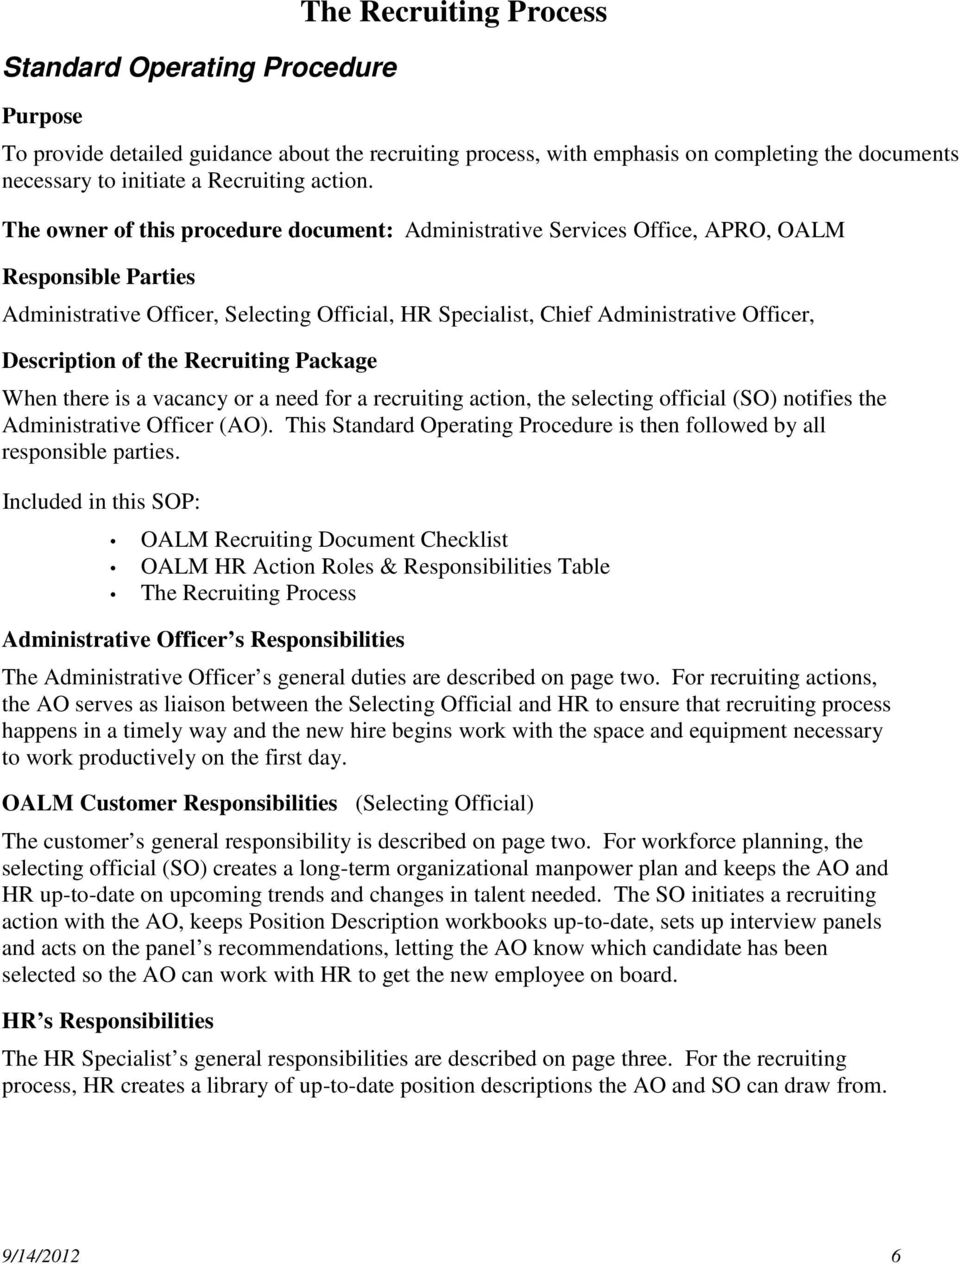 The owner of this procedure document: Administrative Services Office, APRO, OALM Responsible Parties Administrative Officer, Selecting Official, HR Specialist, Chief Administrative Officer,